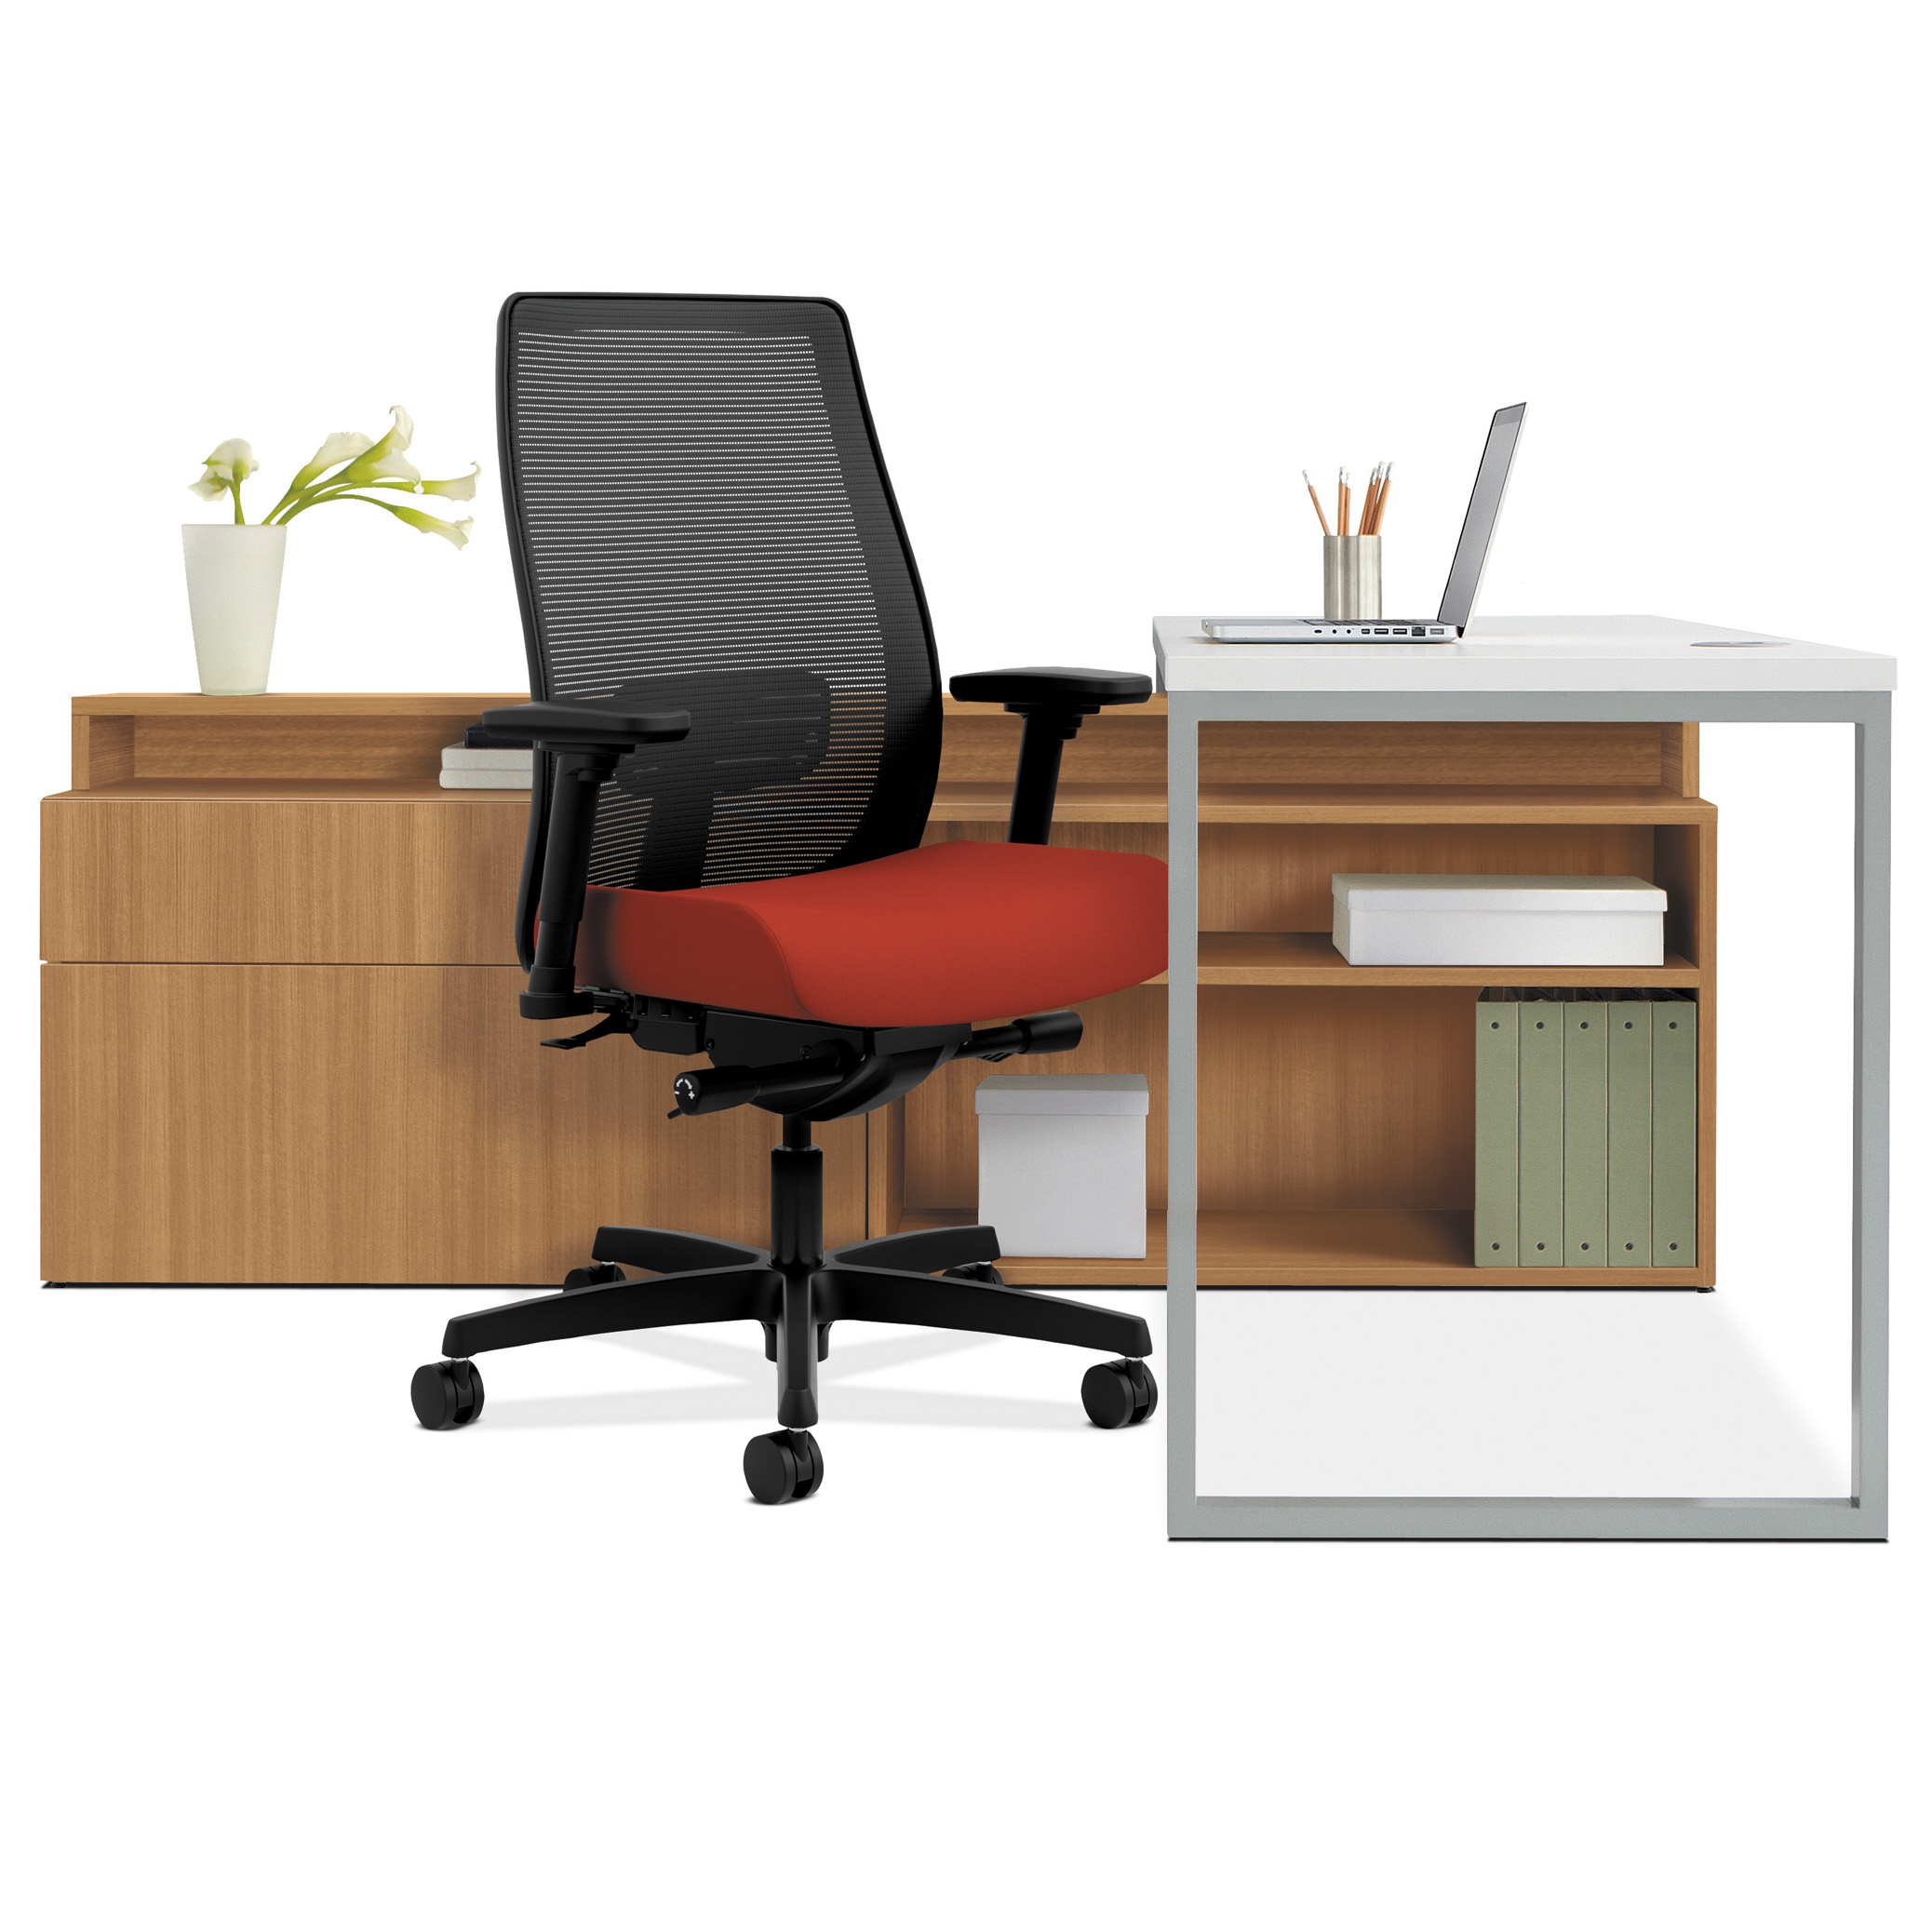 Voi office furniture chicago new rental used office furniture rental albuquerque Home furniture rental albuquerque